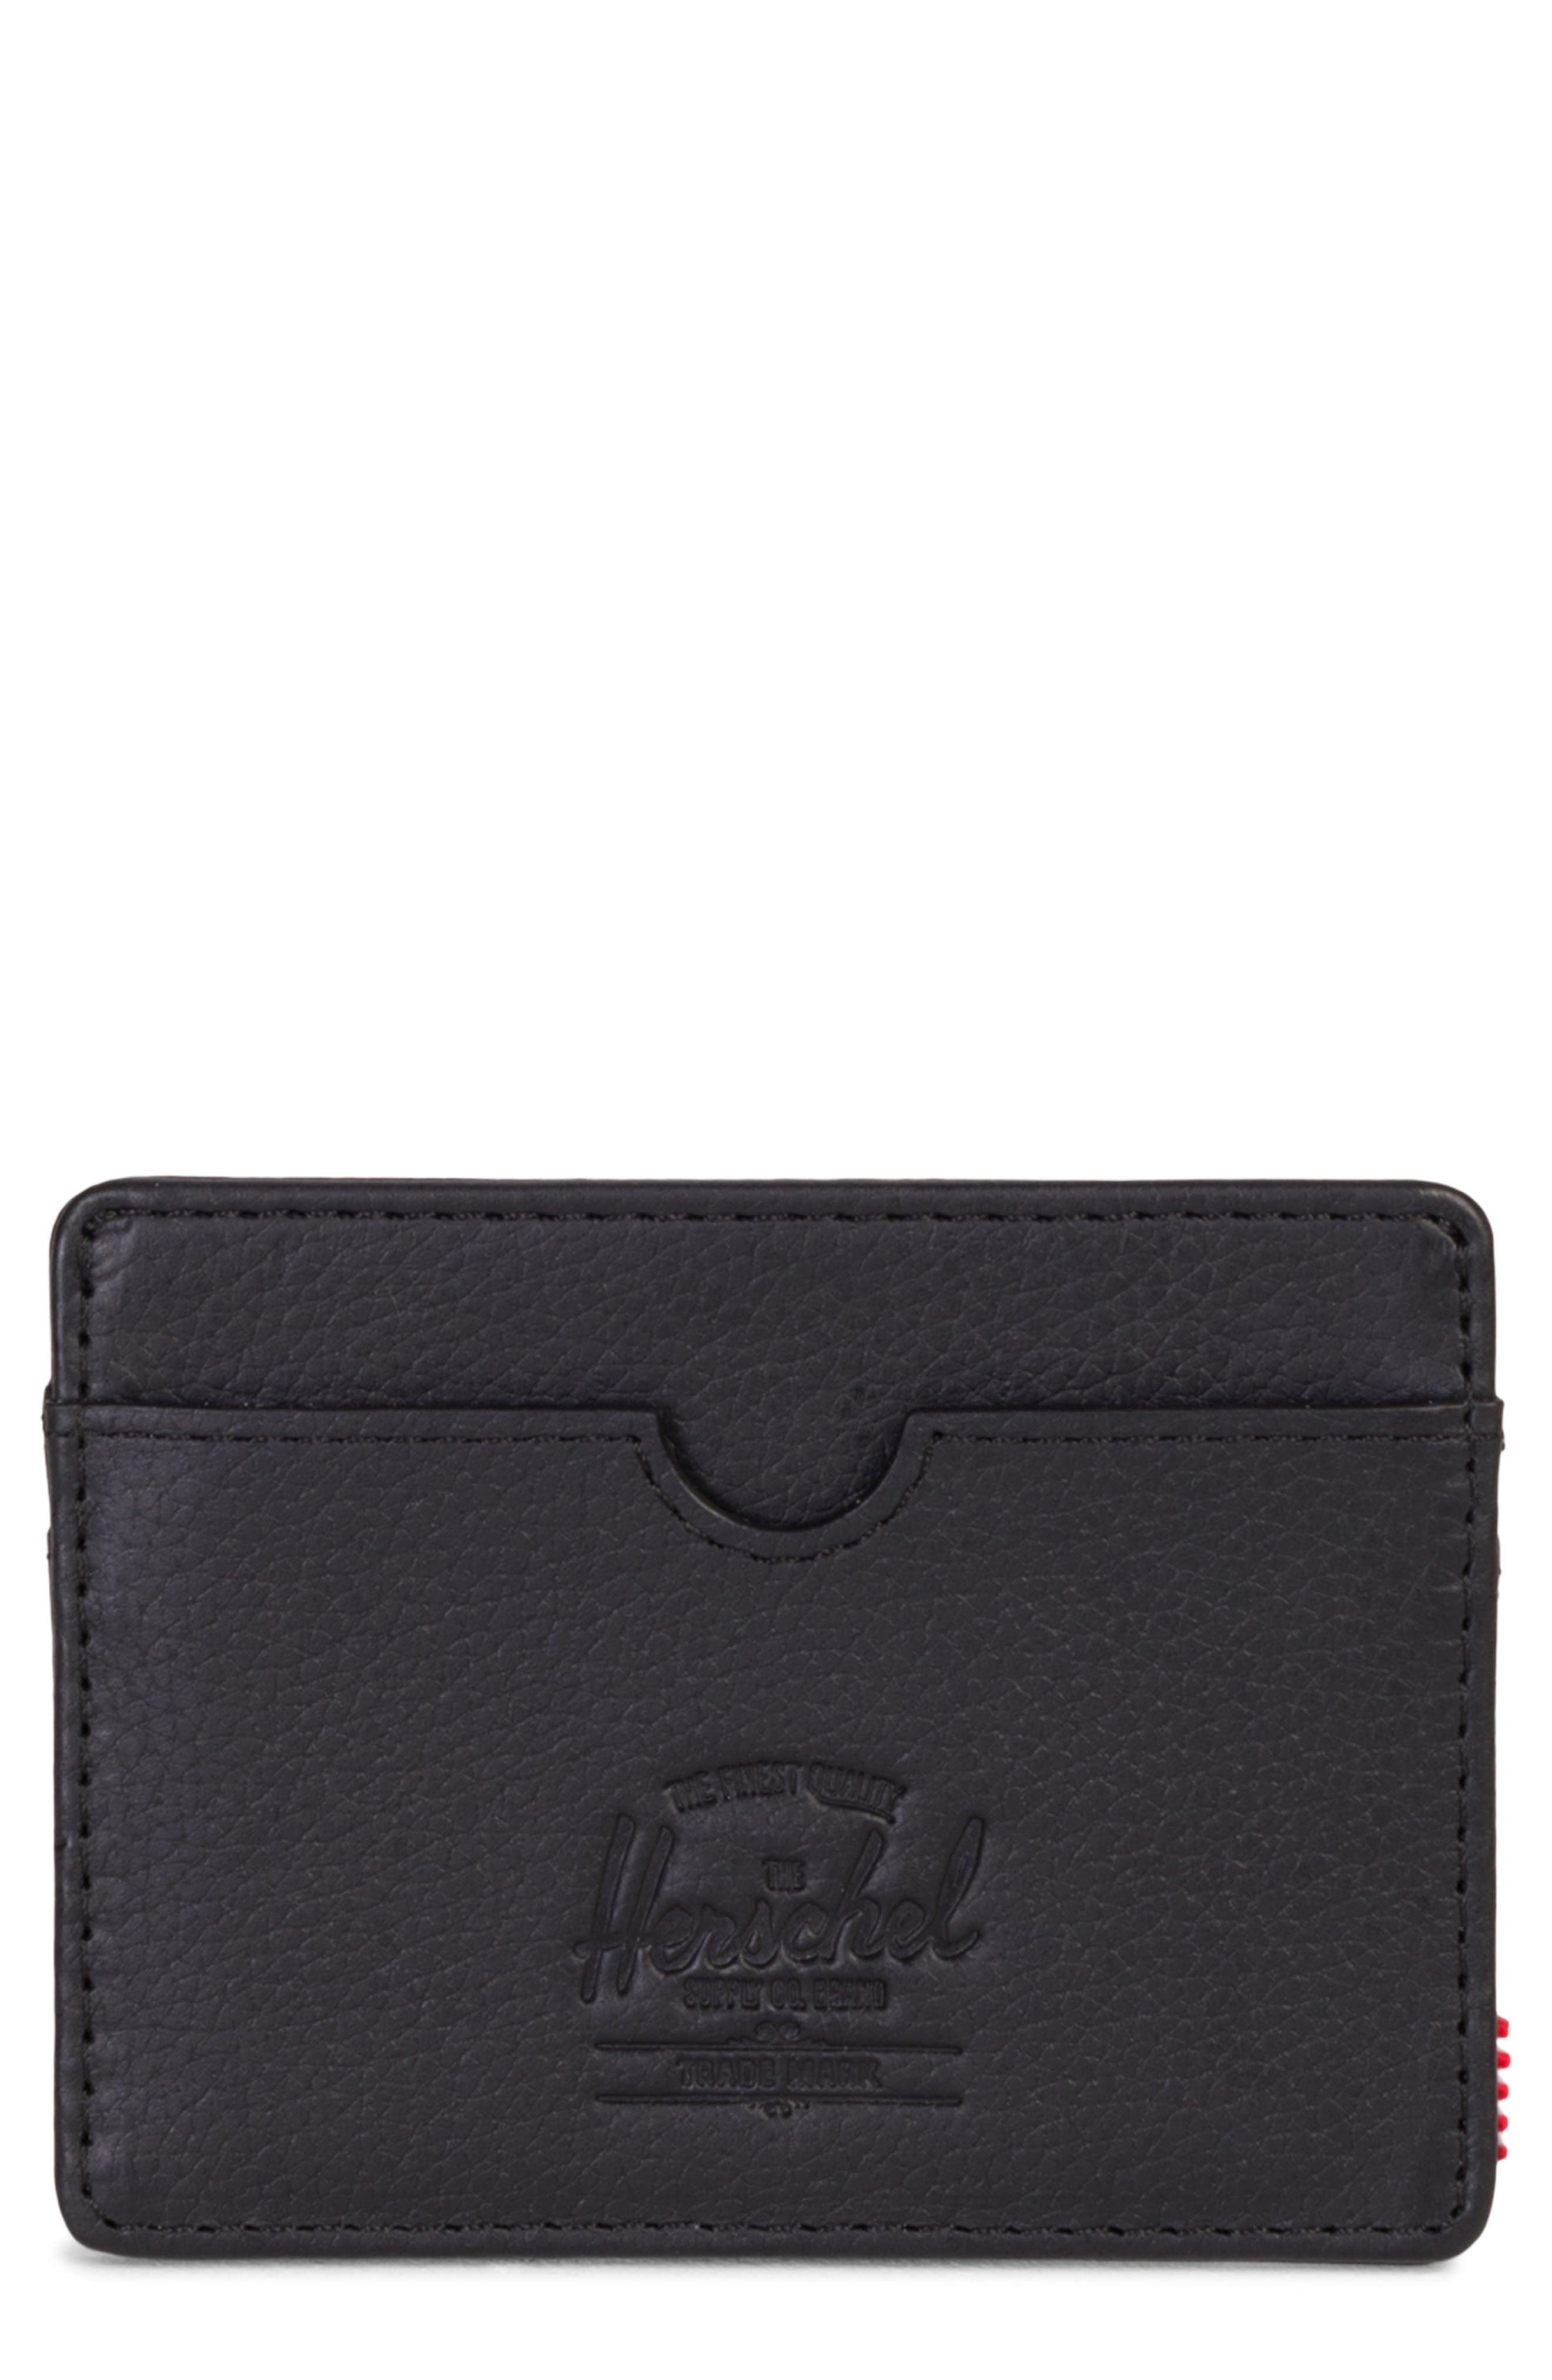 Charlie Leather Card Case,                         Main,                         color, Black Pebbled Leather